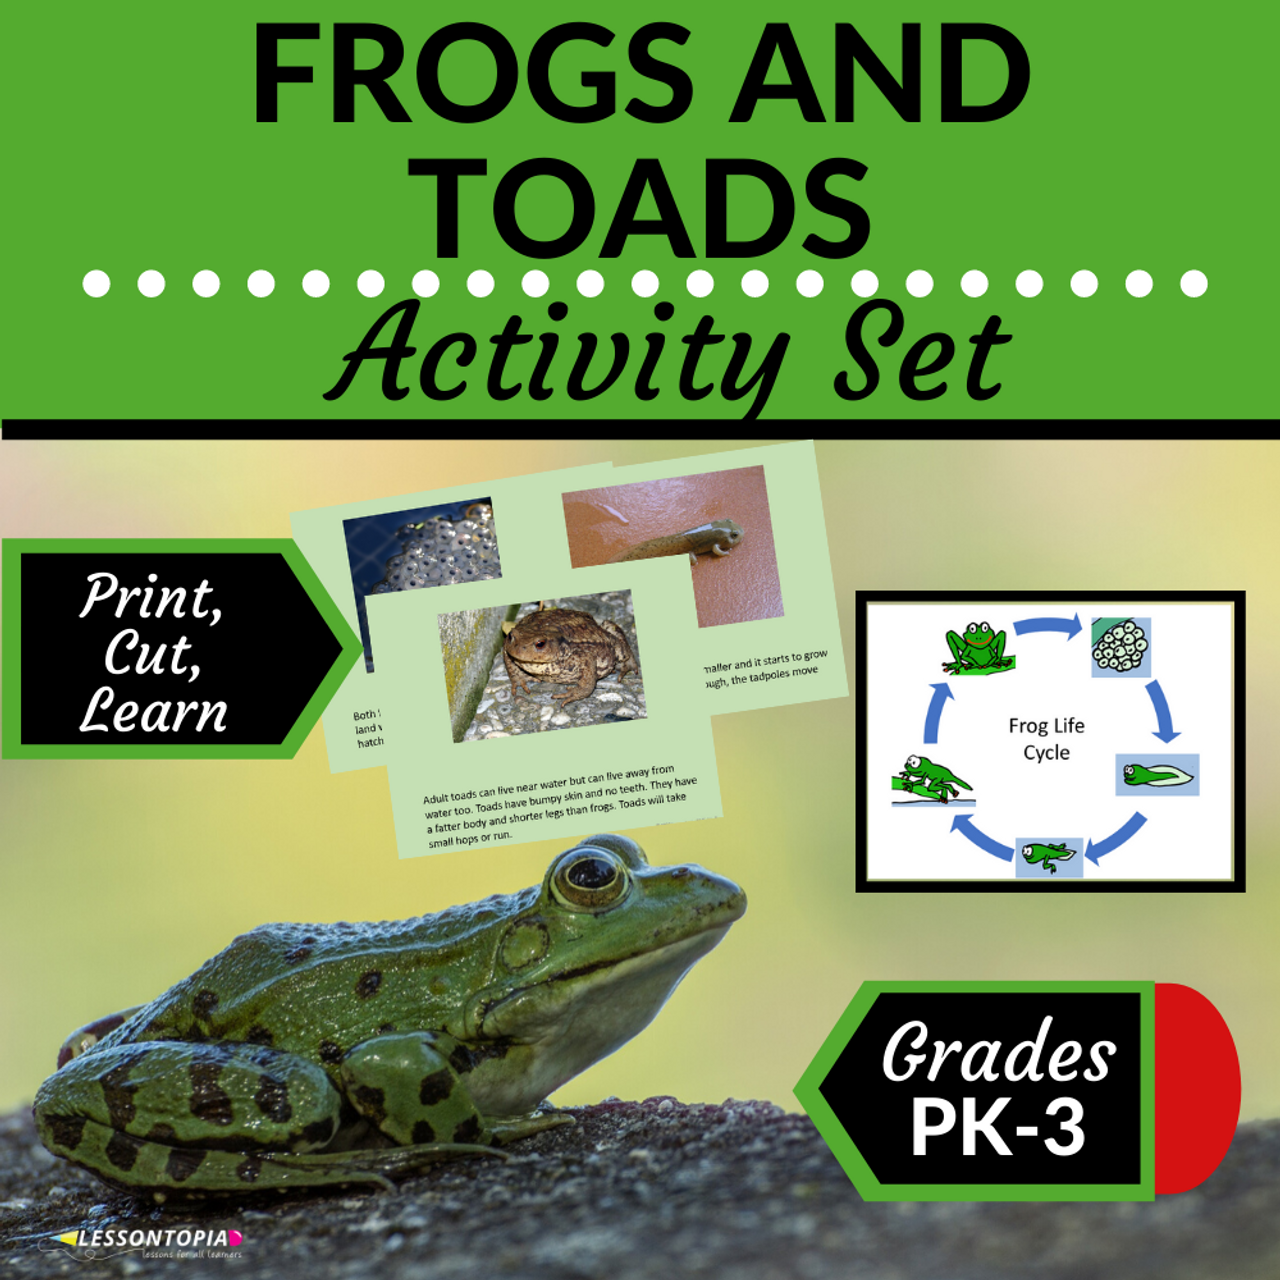 Frog and Toad Activities